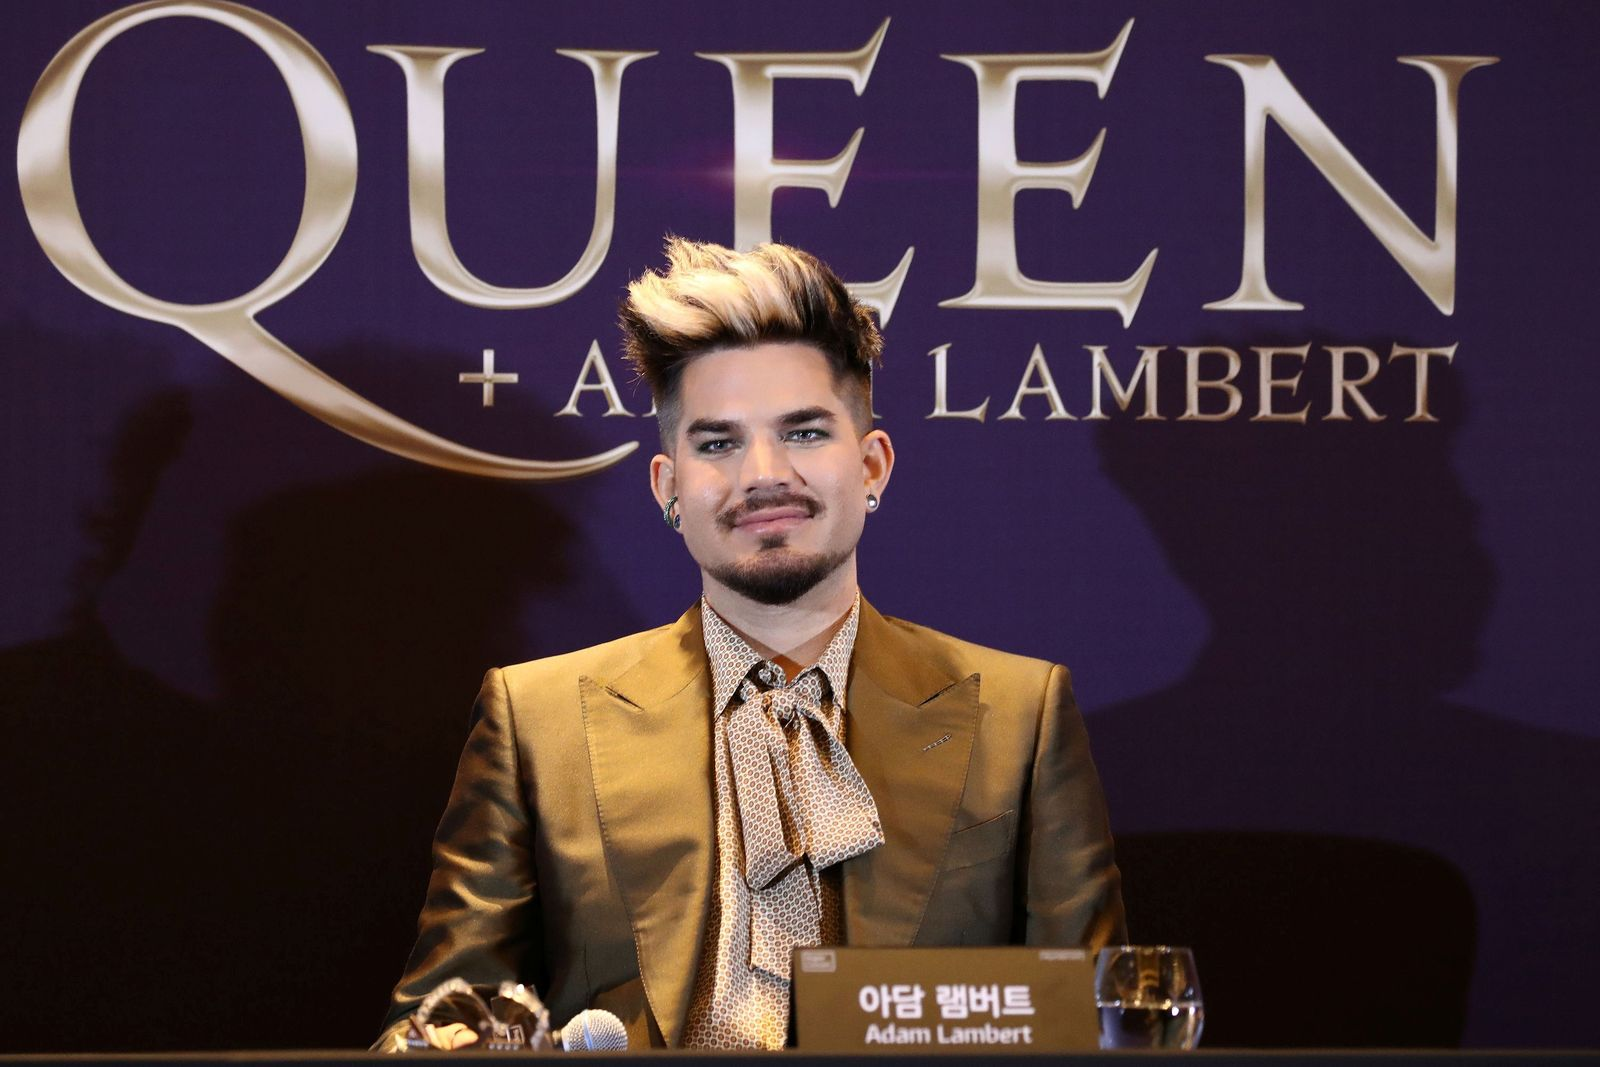 Adam Lambert of Queen attends a news conference ahead of the Rhapsody Tour at Conrad Hotel in Seoul, South Korea